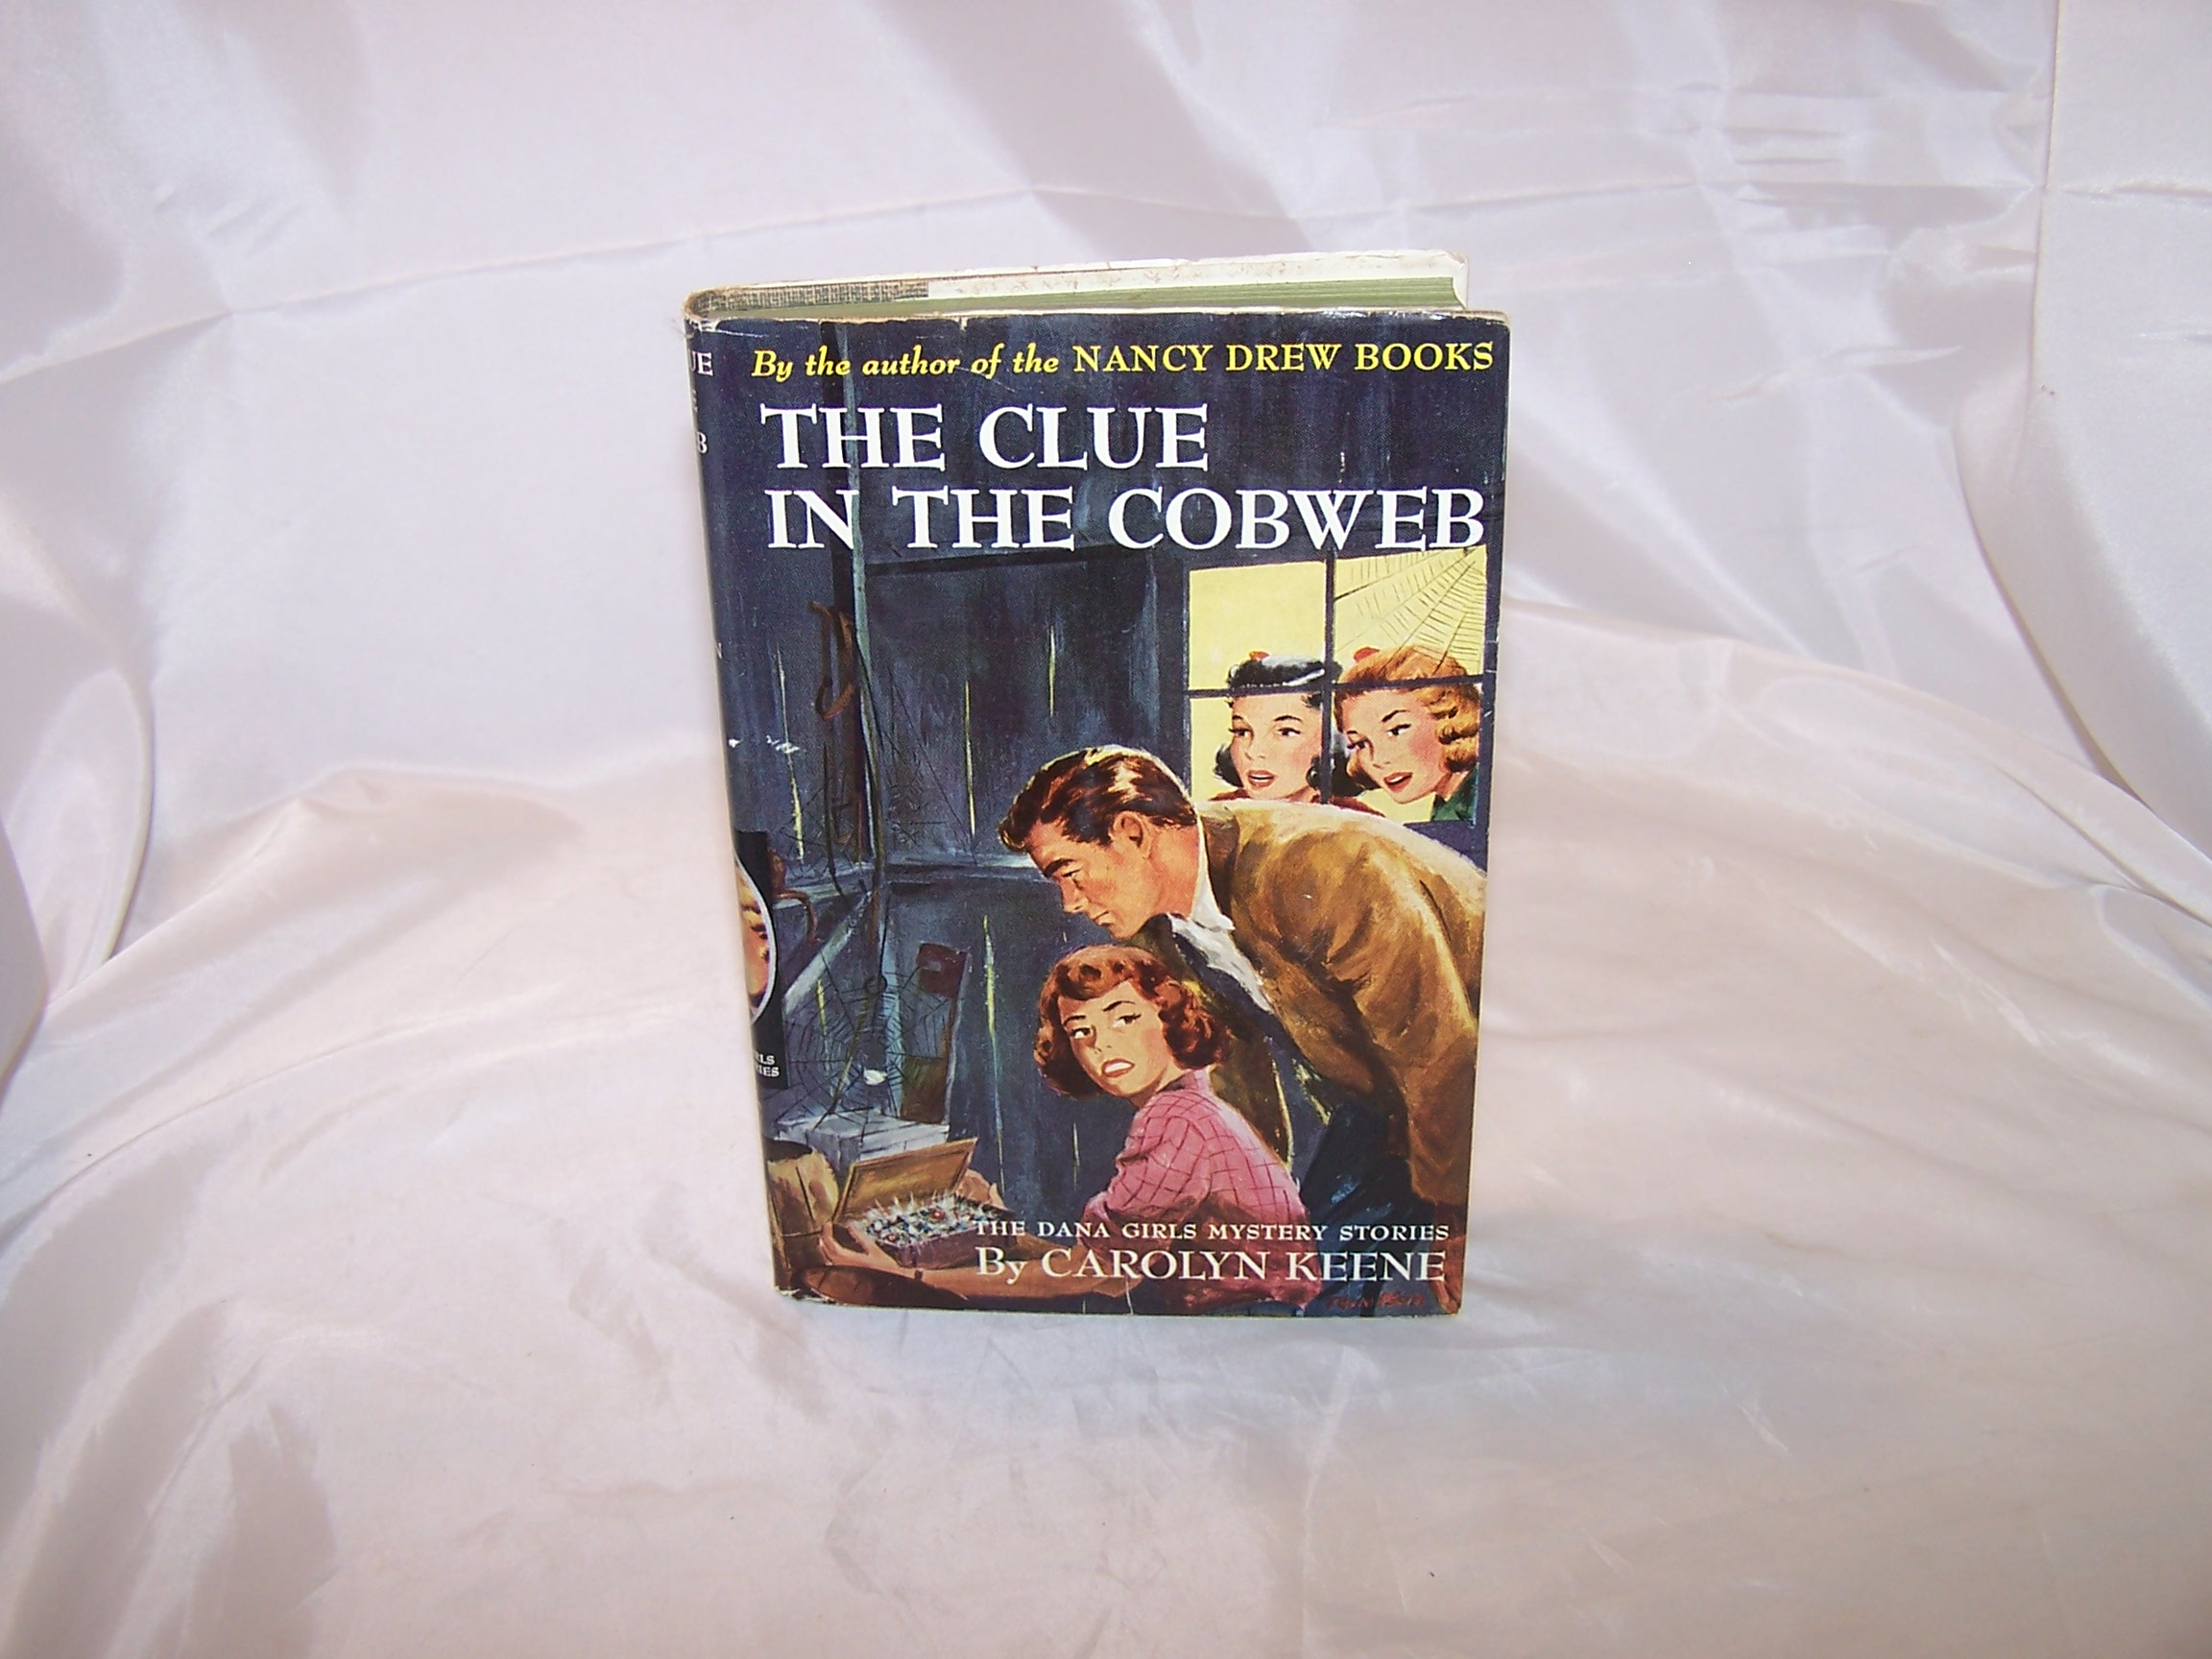 Dana Girls The Clue in the Cobweb, Carolyn Keene, w Dust Jacket